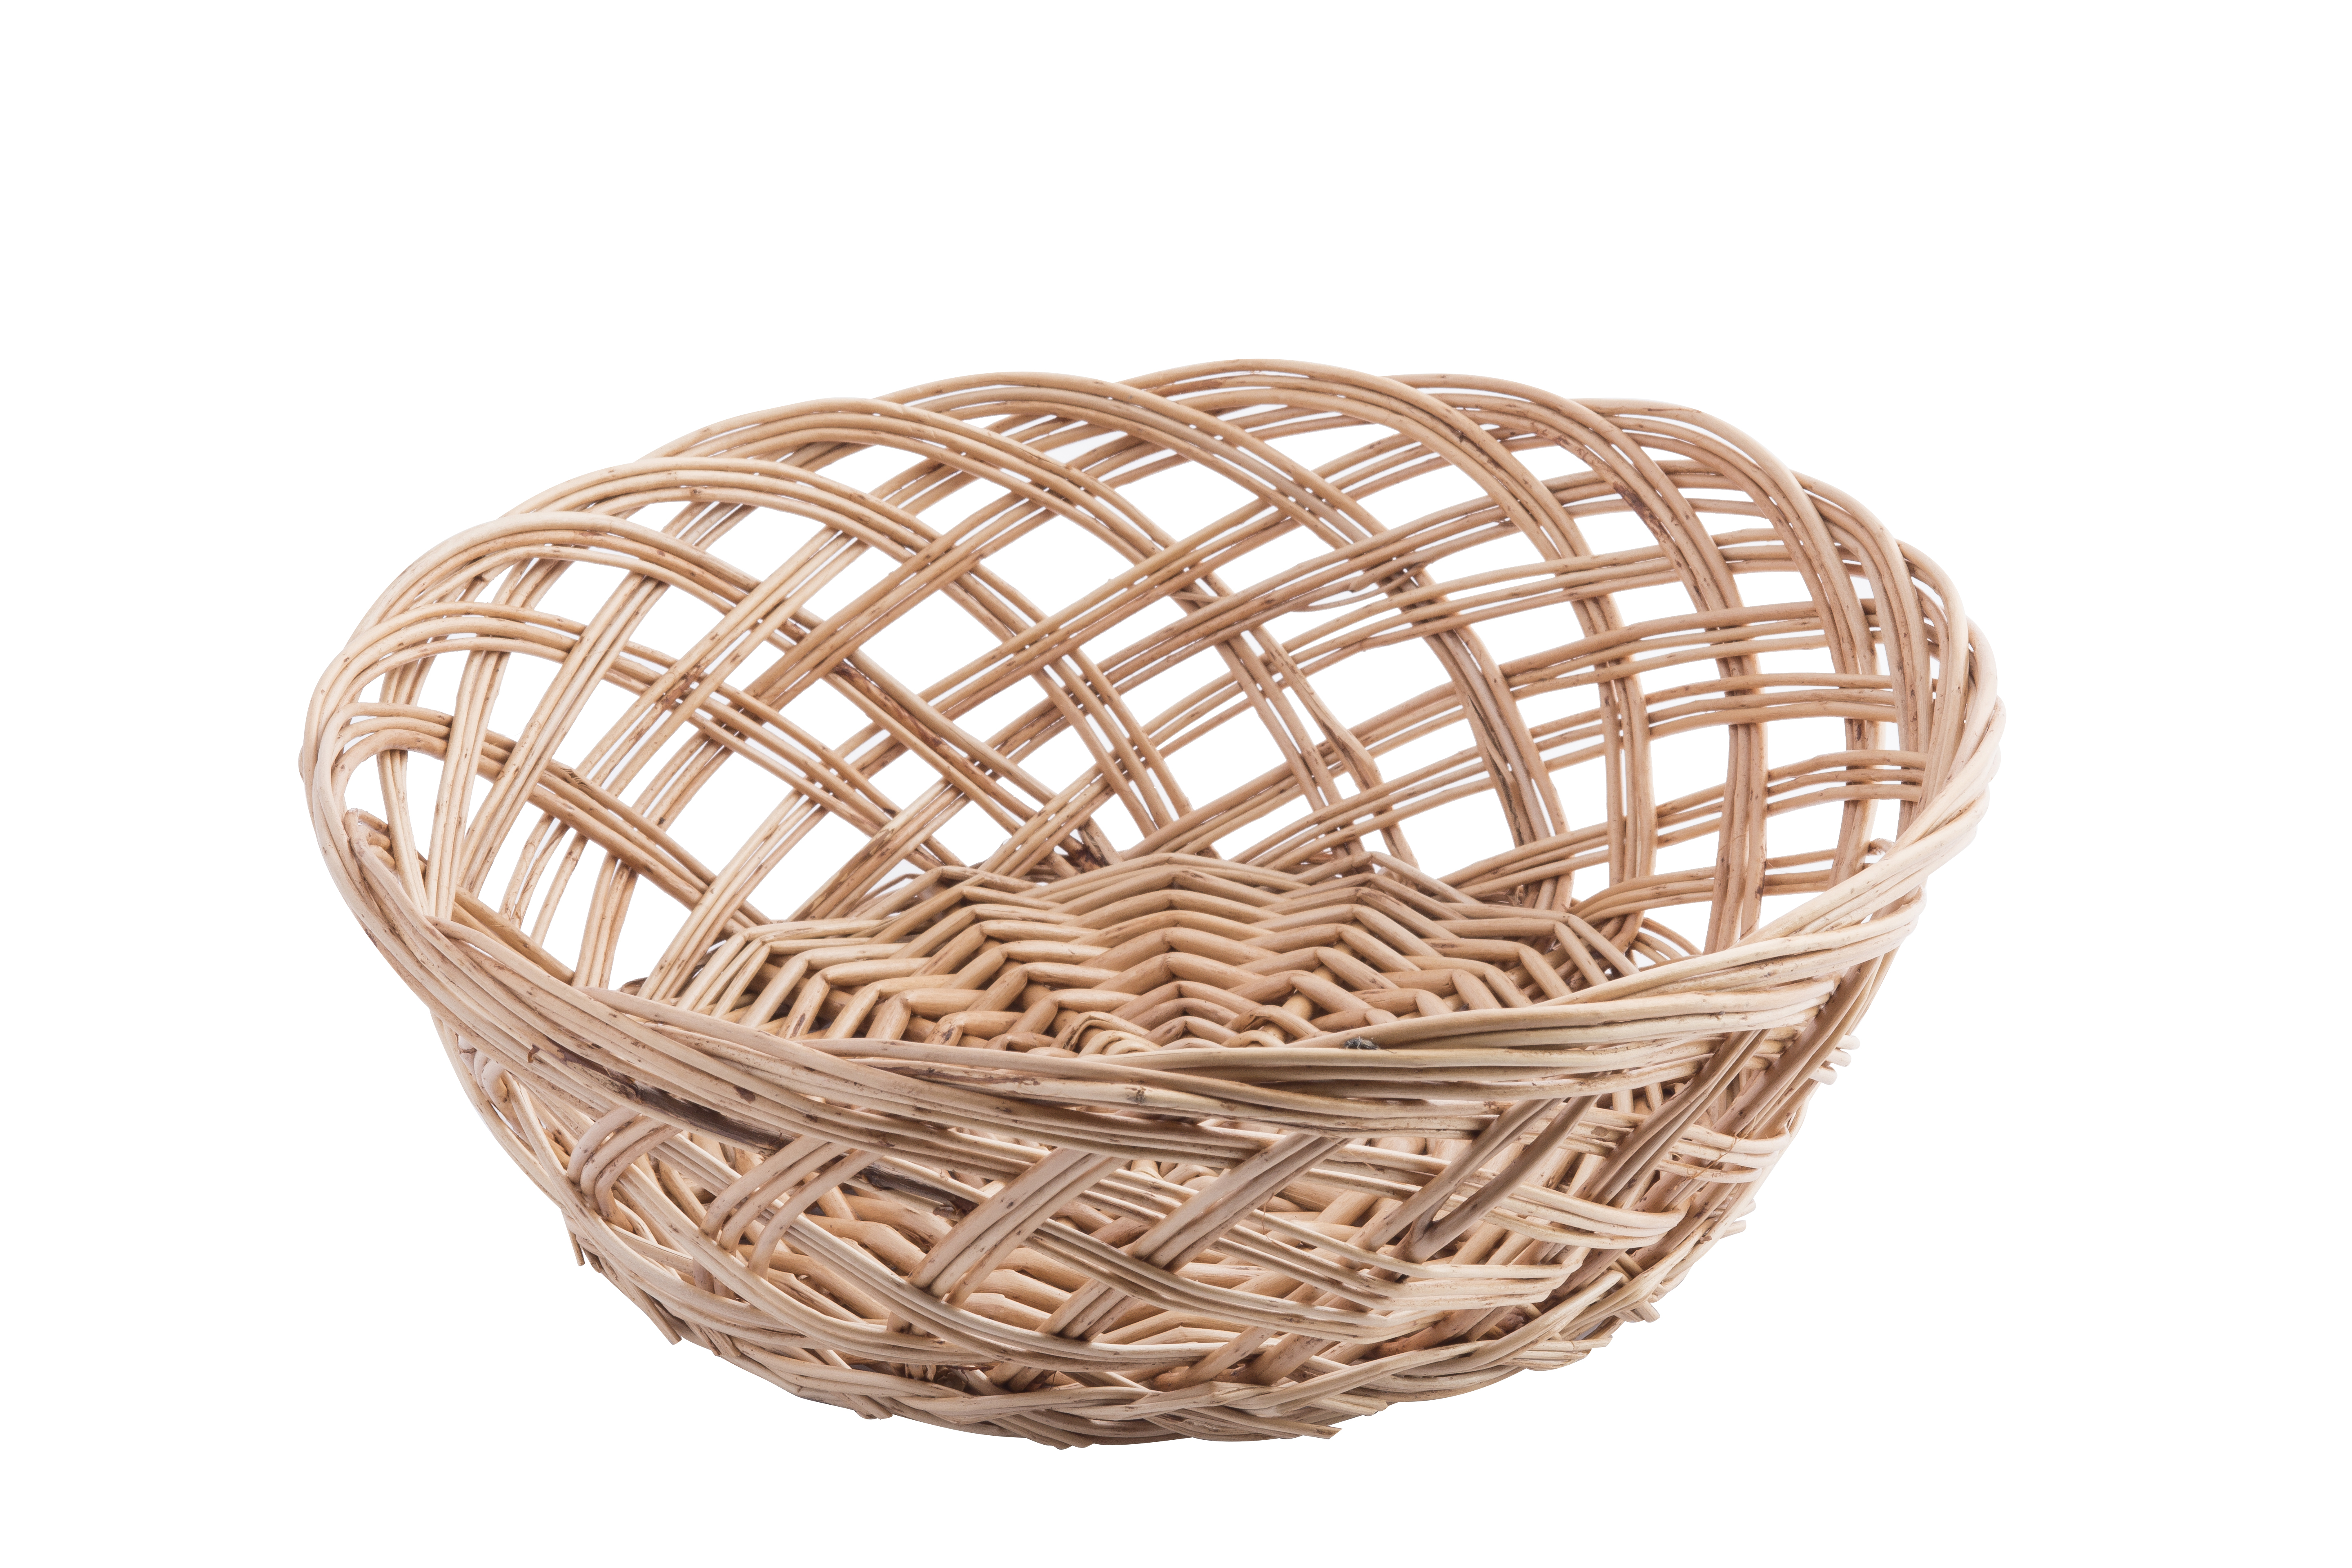 TableCraft Products 1635 hand woven baskets